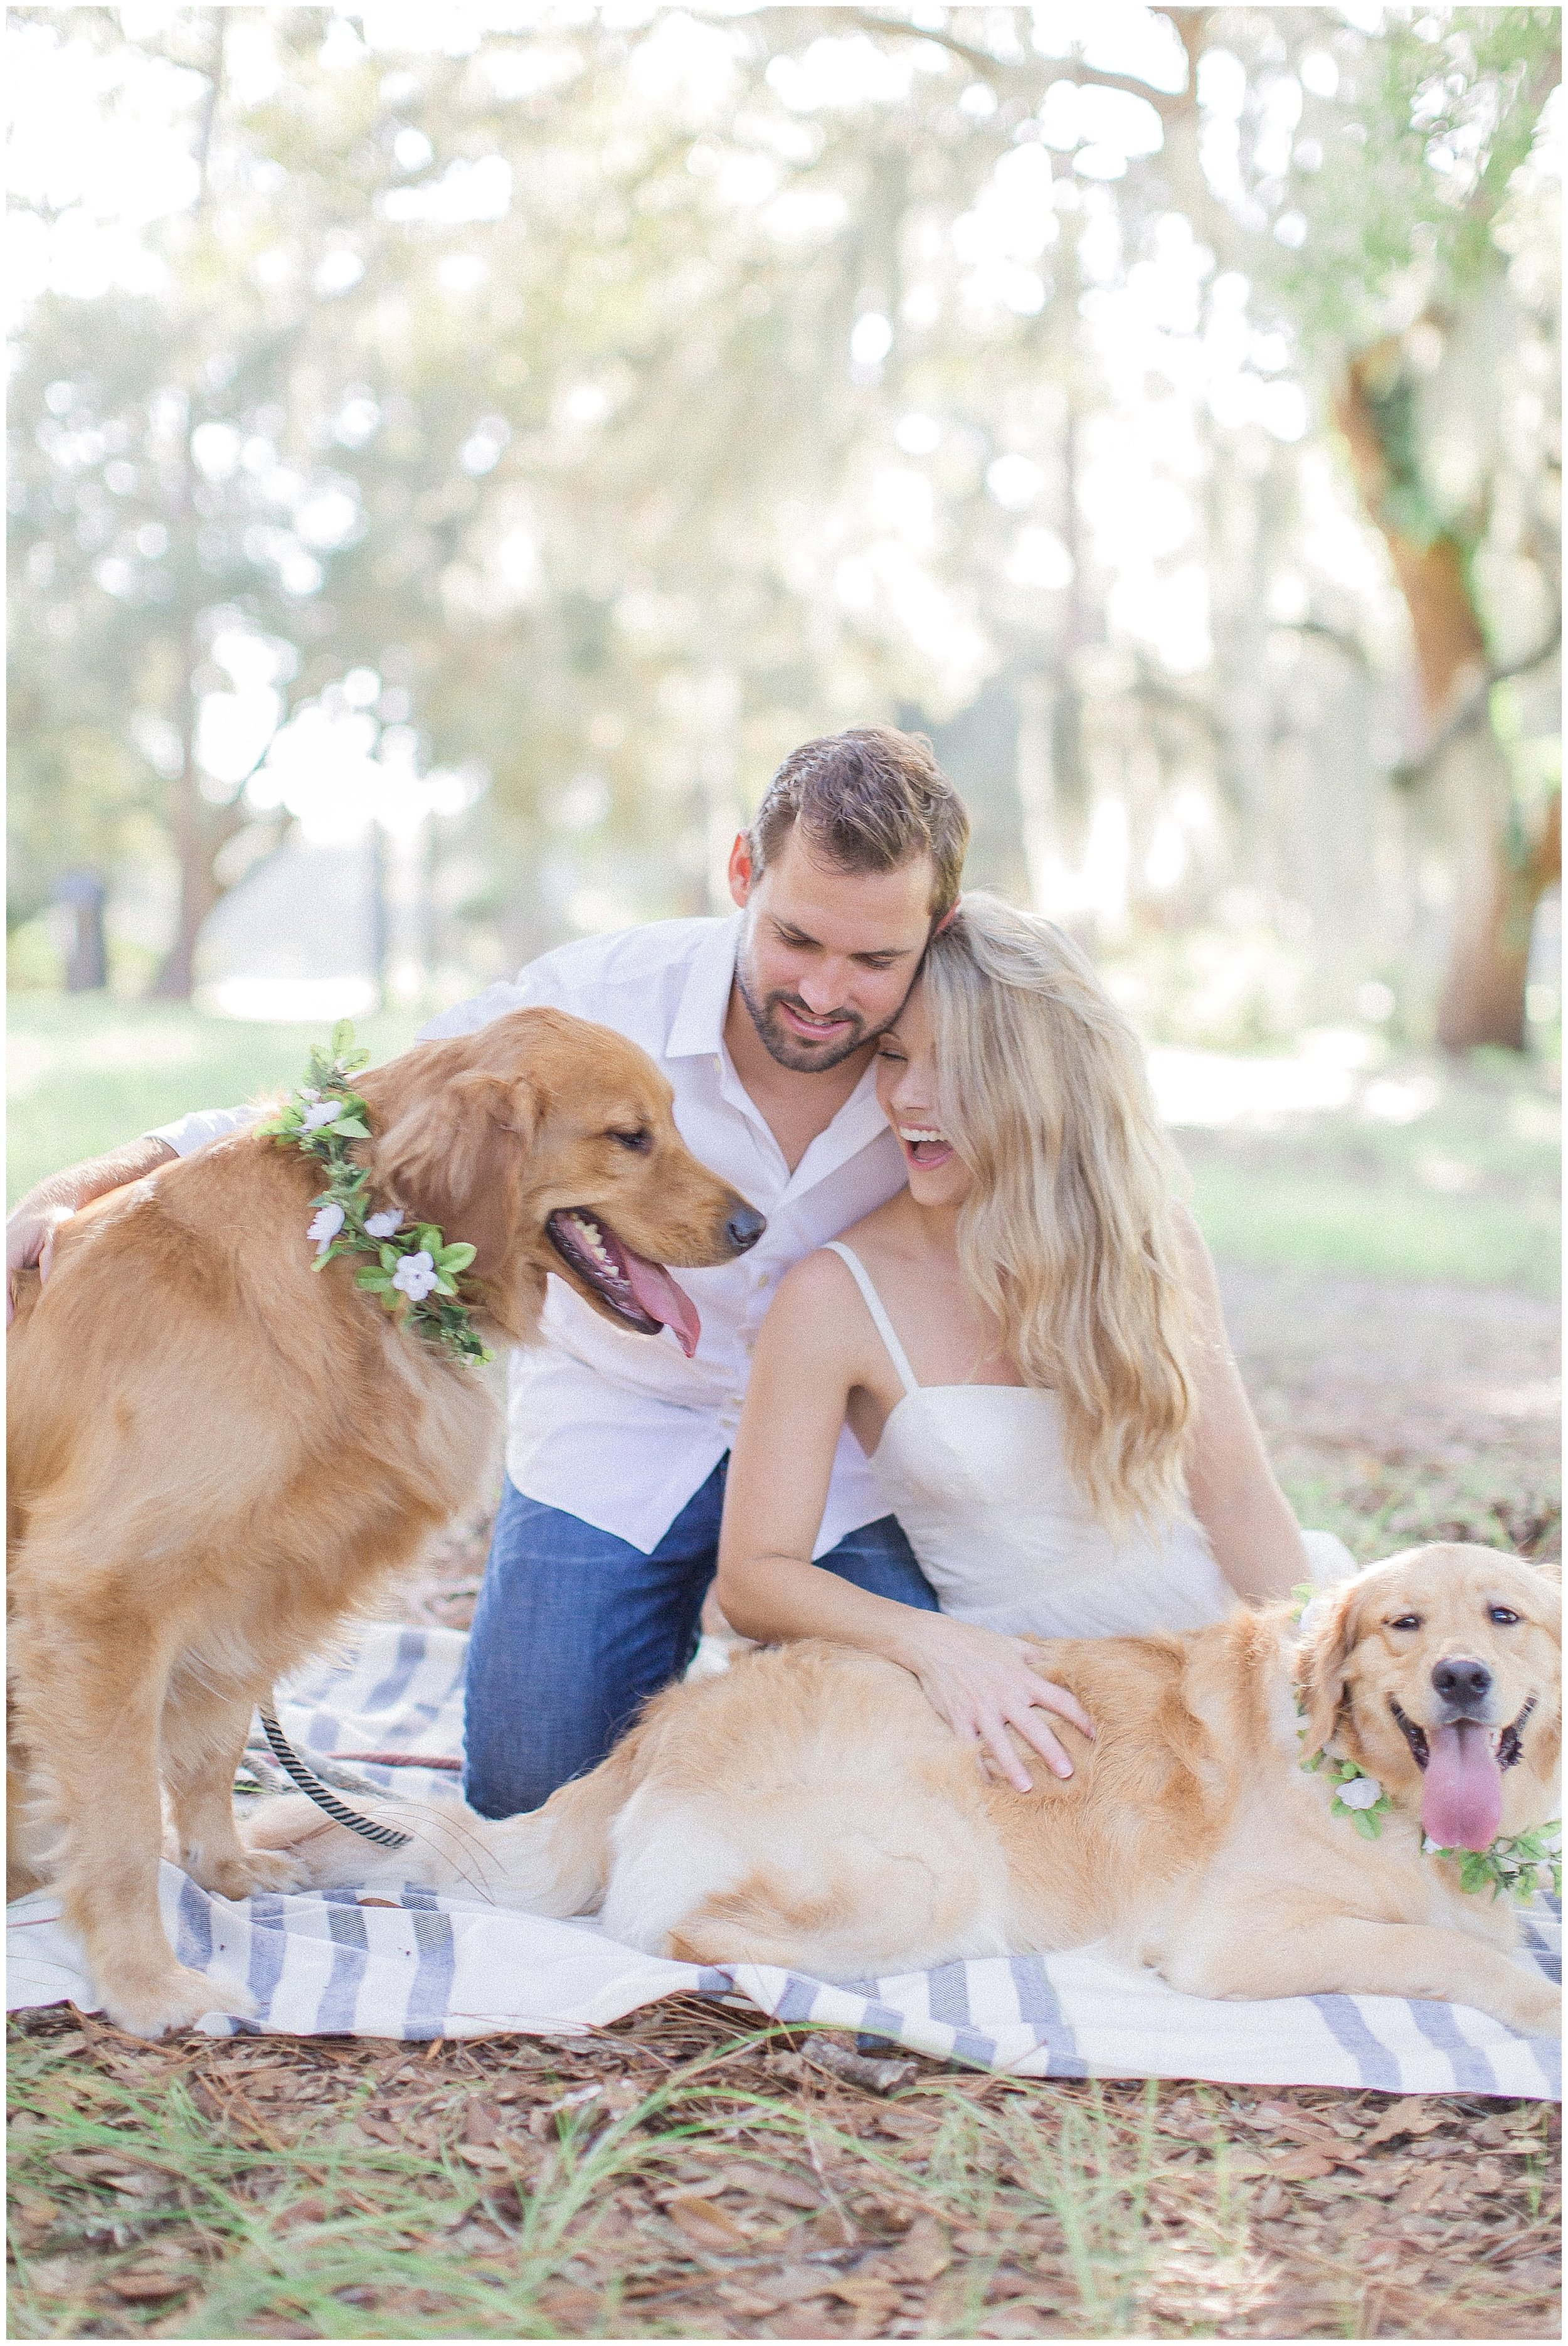 Puppy Engagement Session with Two Goldens and Floral Collars